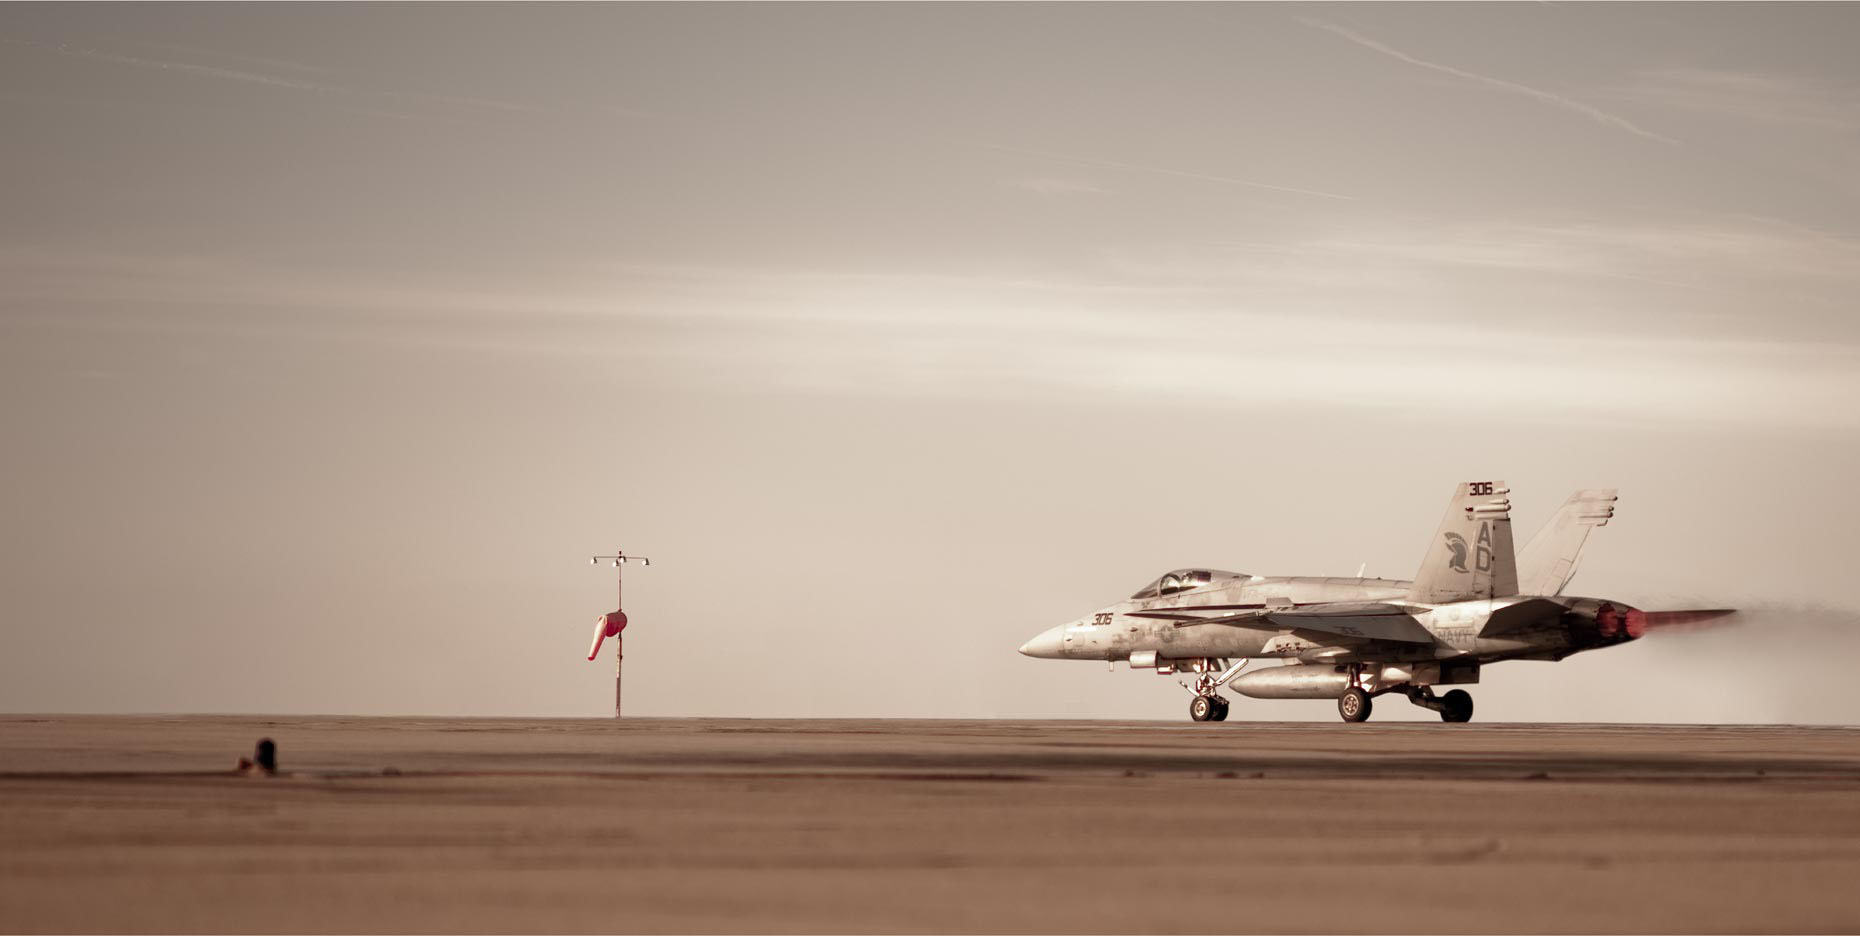 US_NAVY_F18_Hornet_on _runway.jpg.  DC photographer , SF photograper